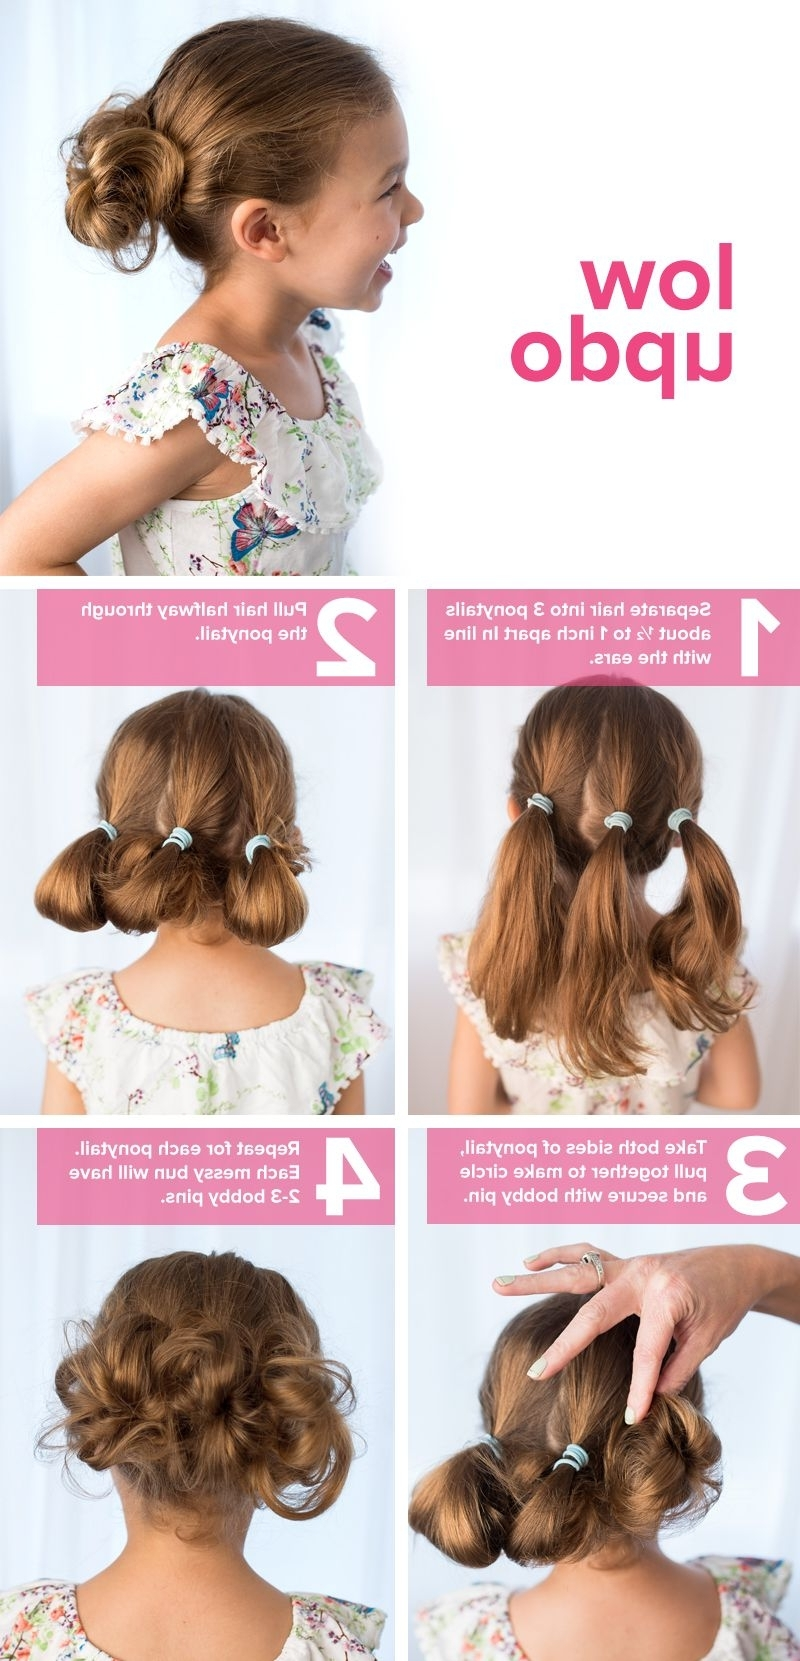 5 Fast, Easy, Cute Hairstyles For Girls | Low Updo, Updo And Kids S Inside Easy Updo Hairstyles For Medium Hair To Do Yourself (View 6 of 15)